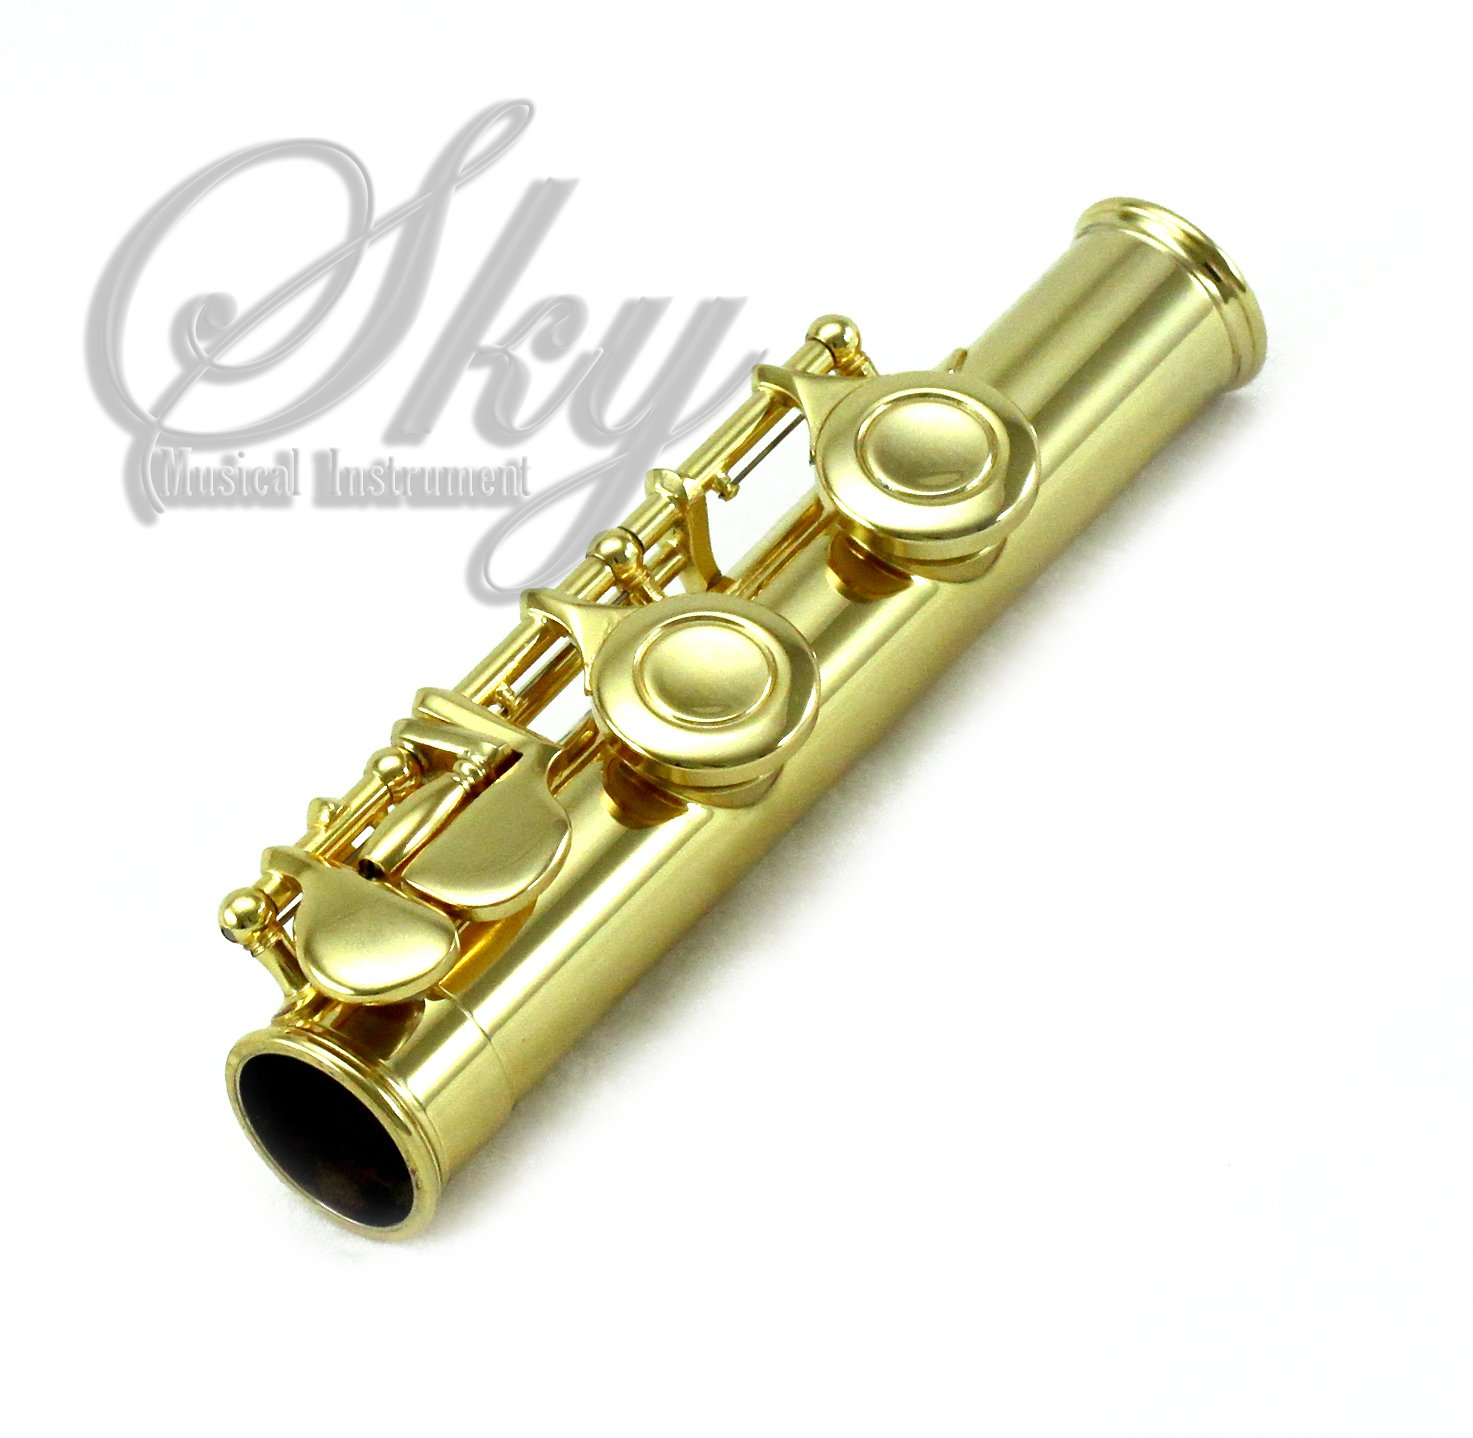 Sky 24k Gold Plated Gold Keys Closed Hole C Flute with 1 Year Manufacturer Warranty, Guarantee Top Quality Sound with Lightweight Case, Cleaning Rod, Cloth, Joint Grease and Screw Driver by Sky (Image #3)